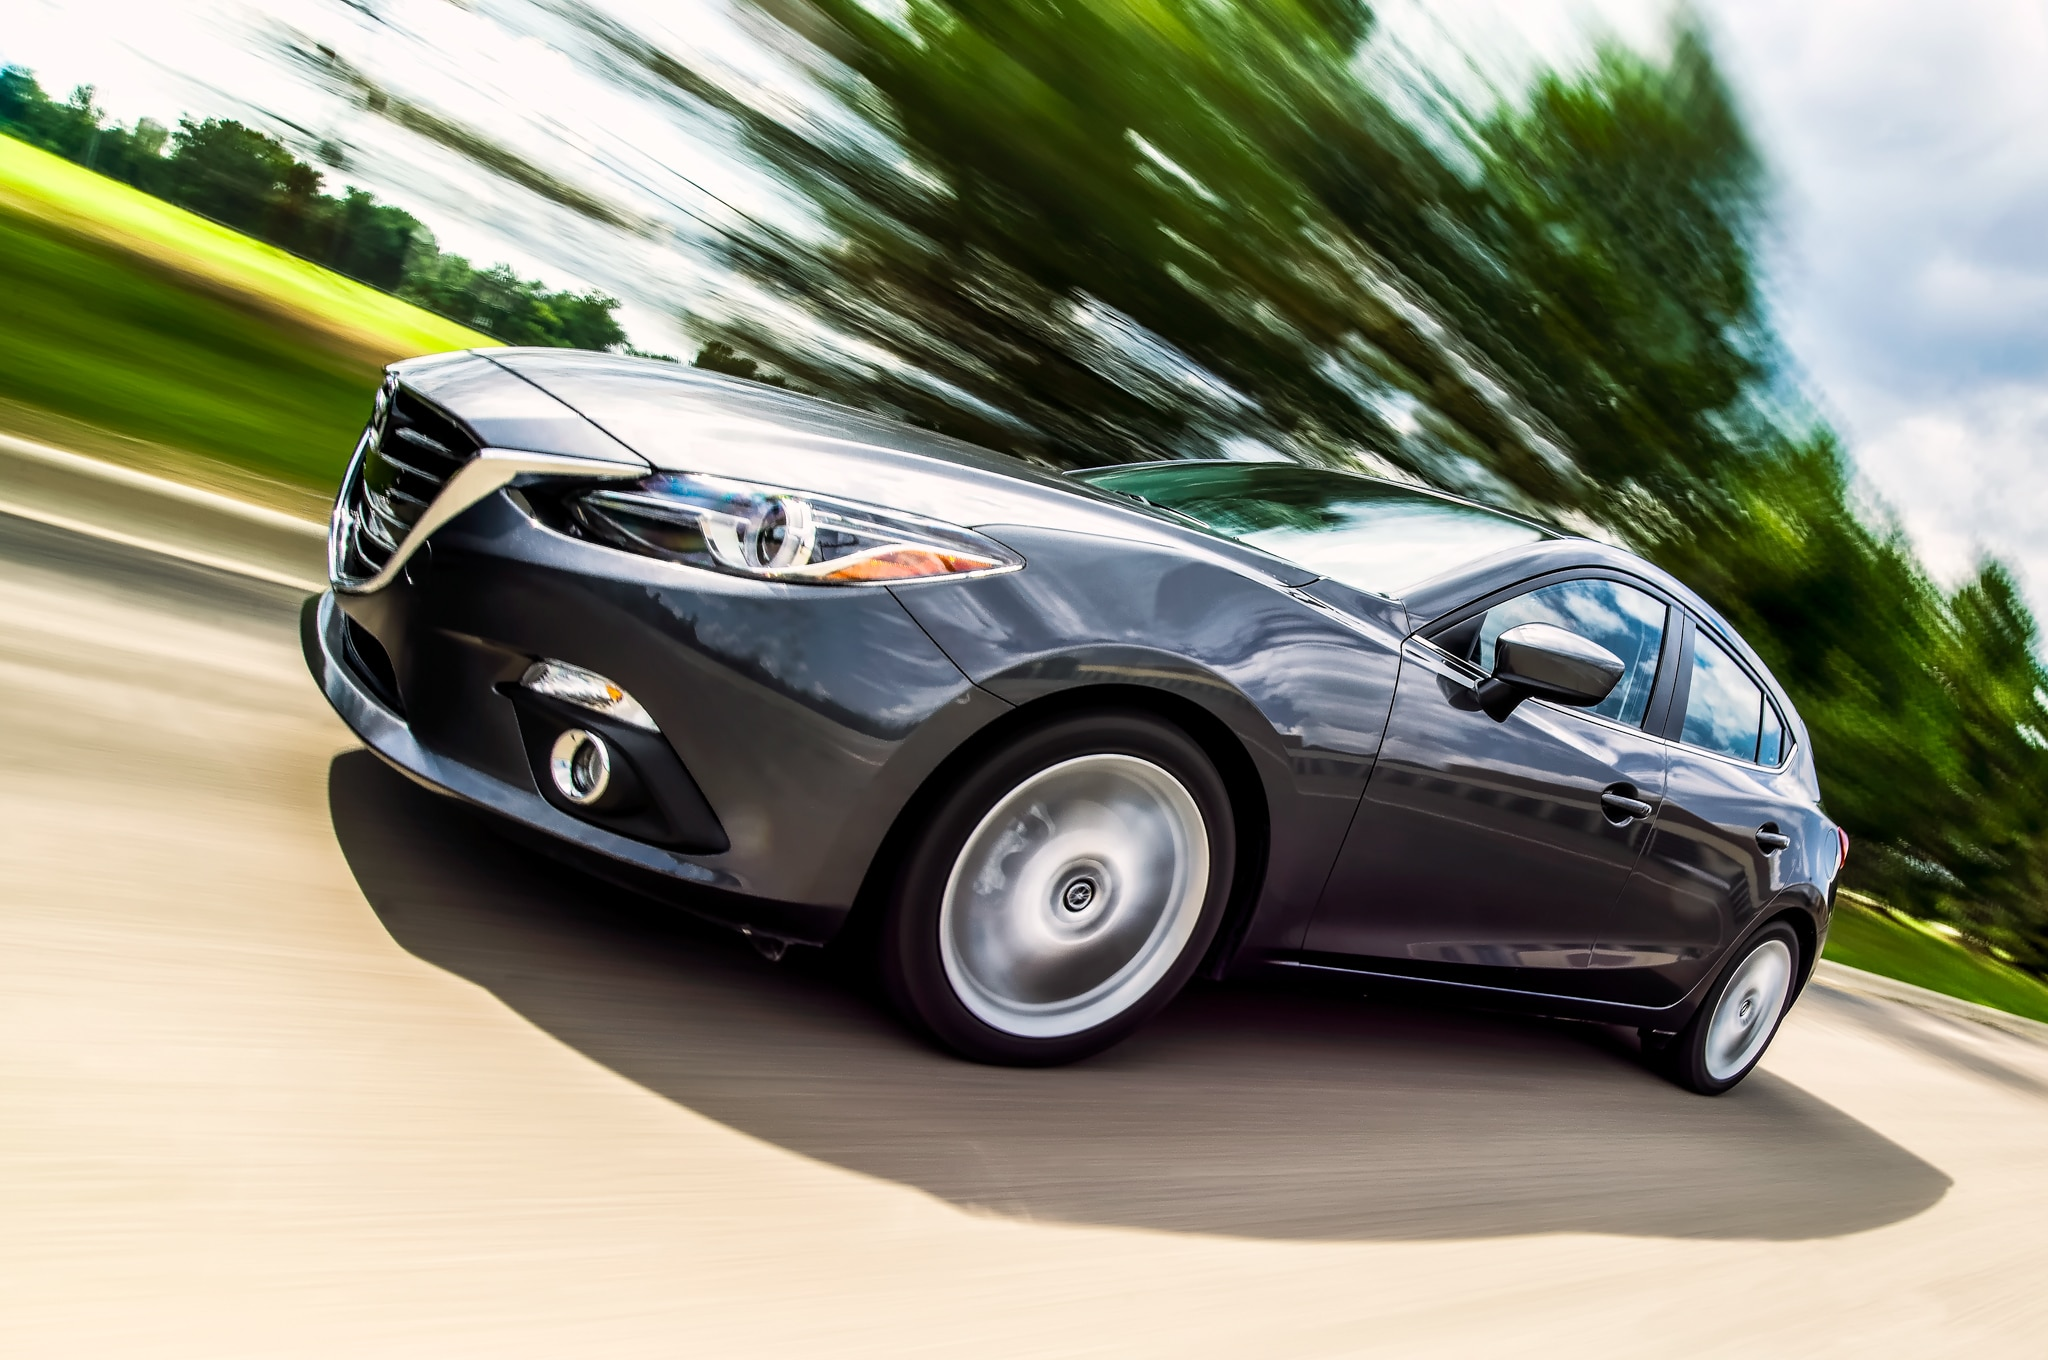 2014 Mazda 3 S Touring Front Three Quarter In Motion